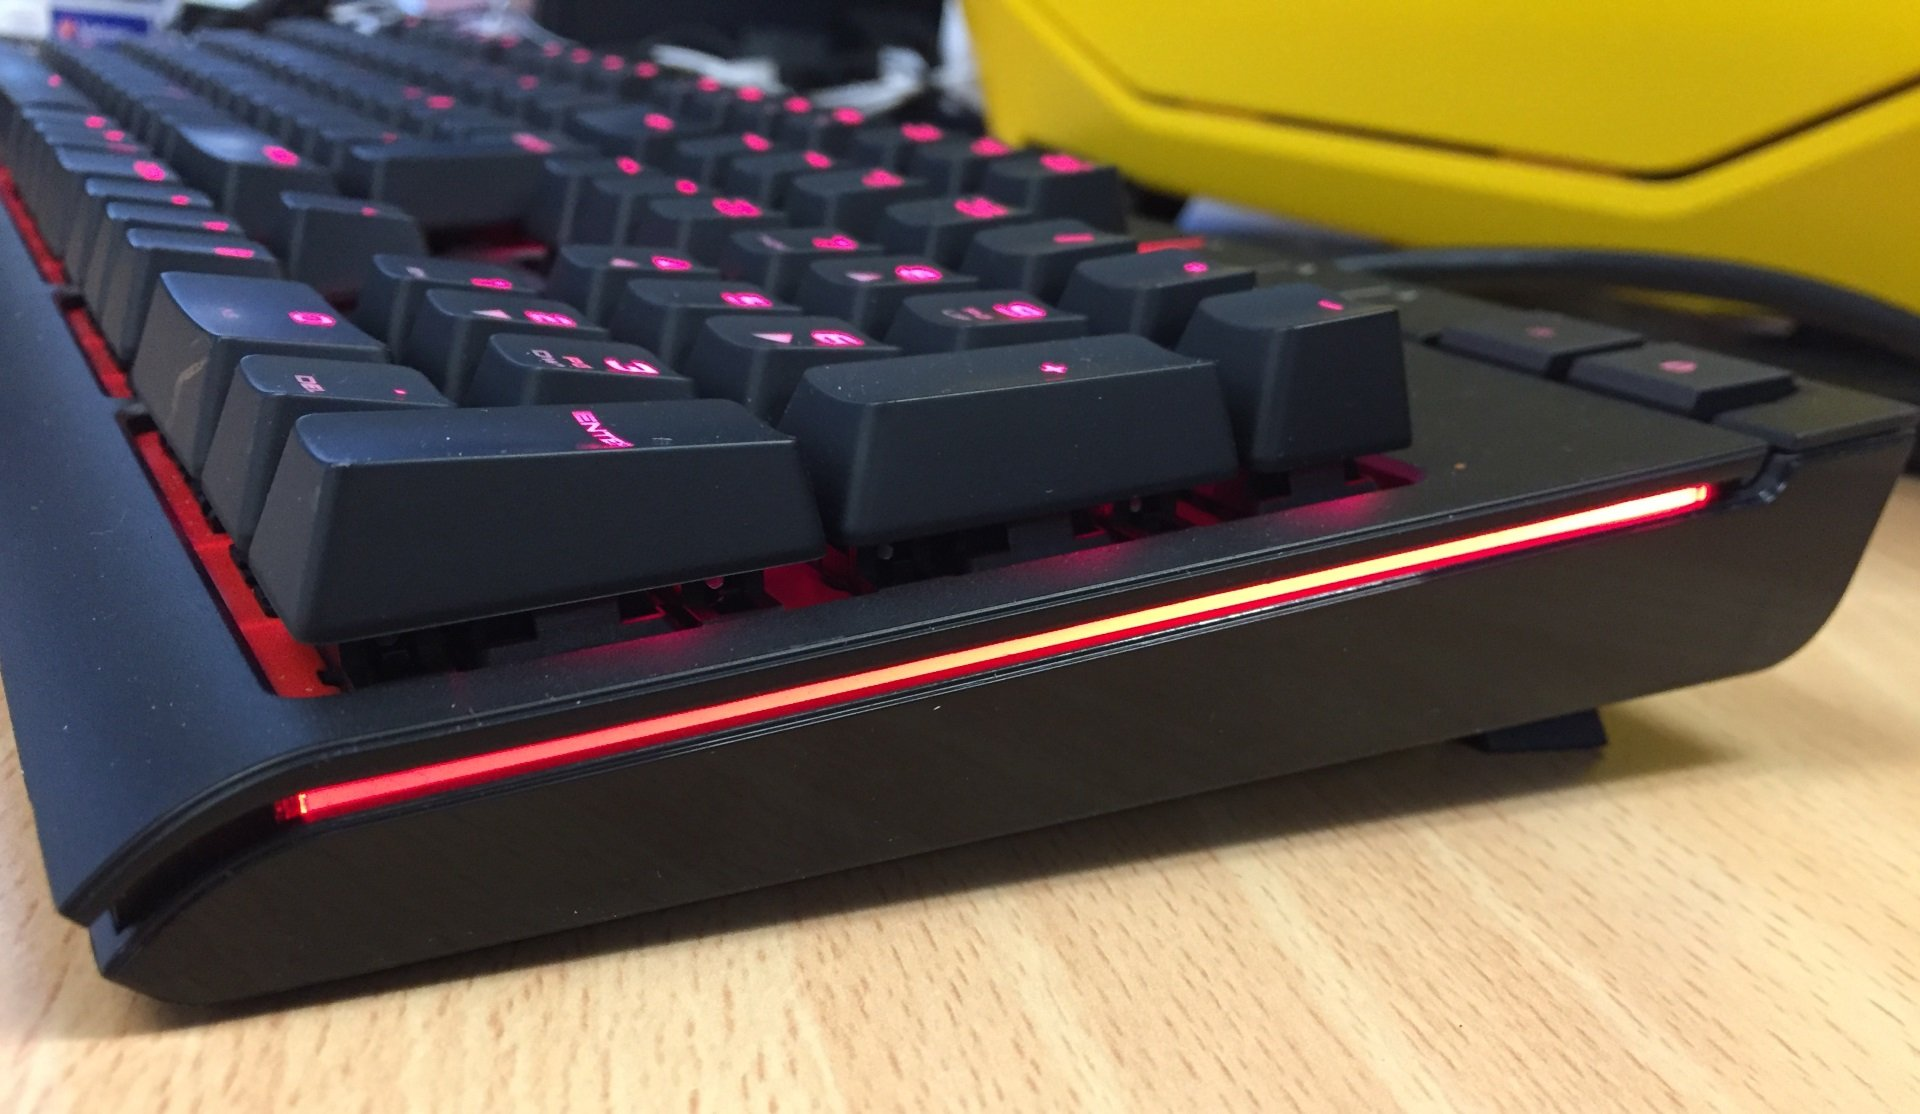 Corsair Strafe Mechanical Gaming Keyboard Review Expert Reviews Rgb Cherry Mx Red Side Lights